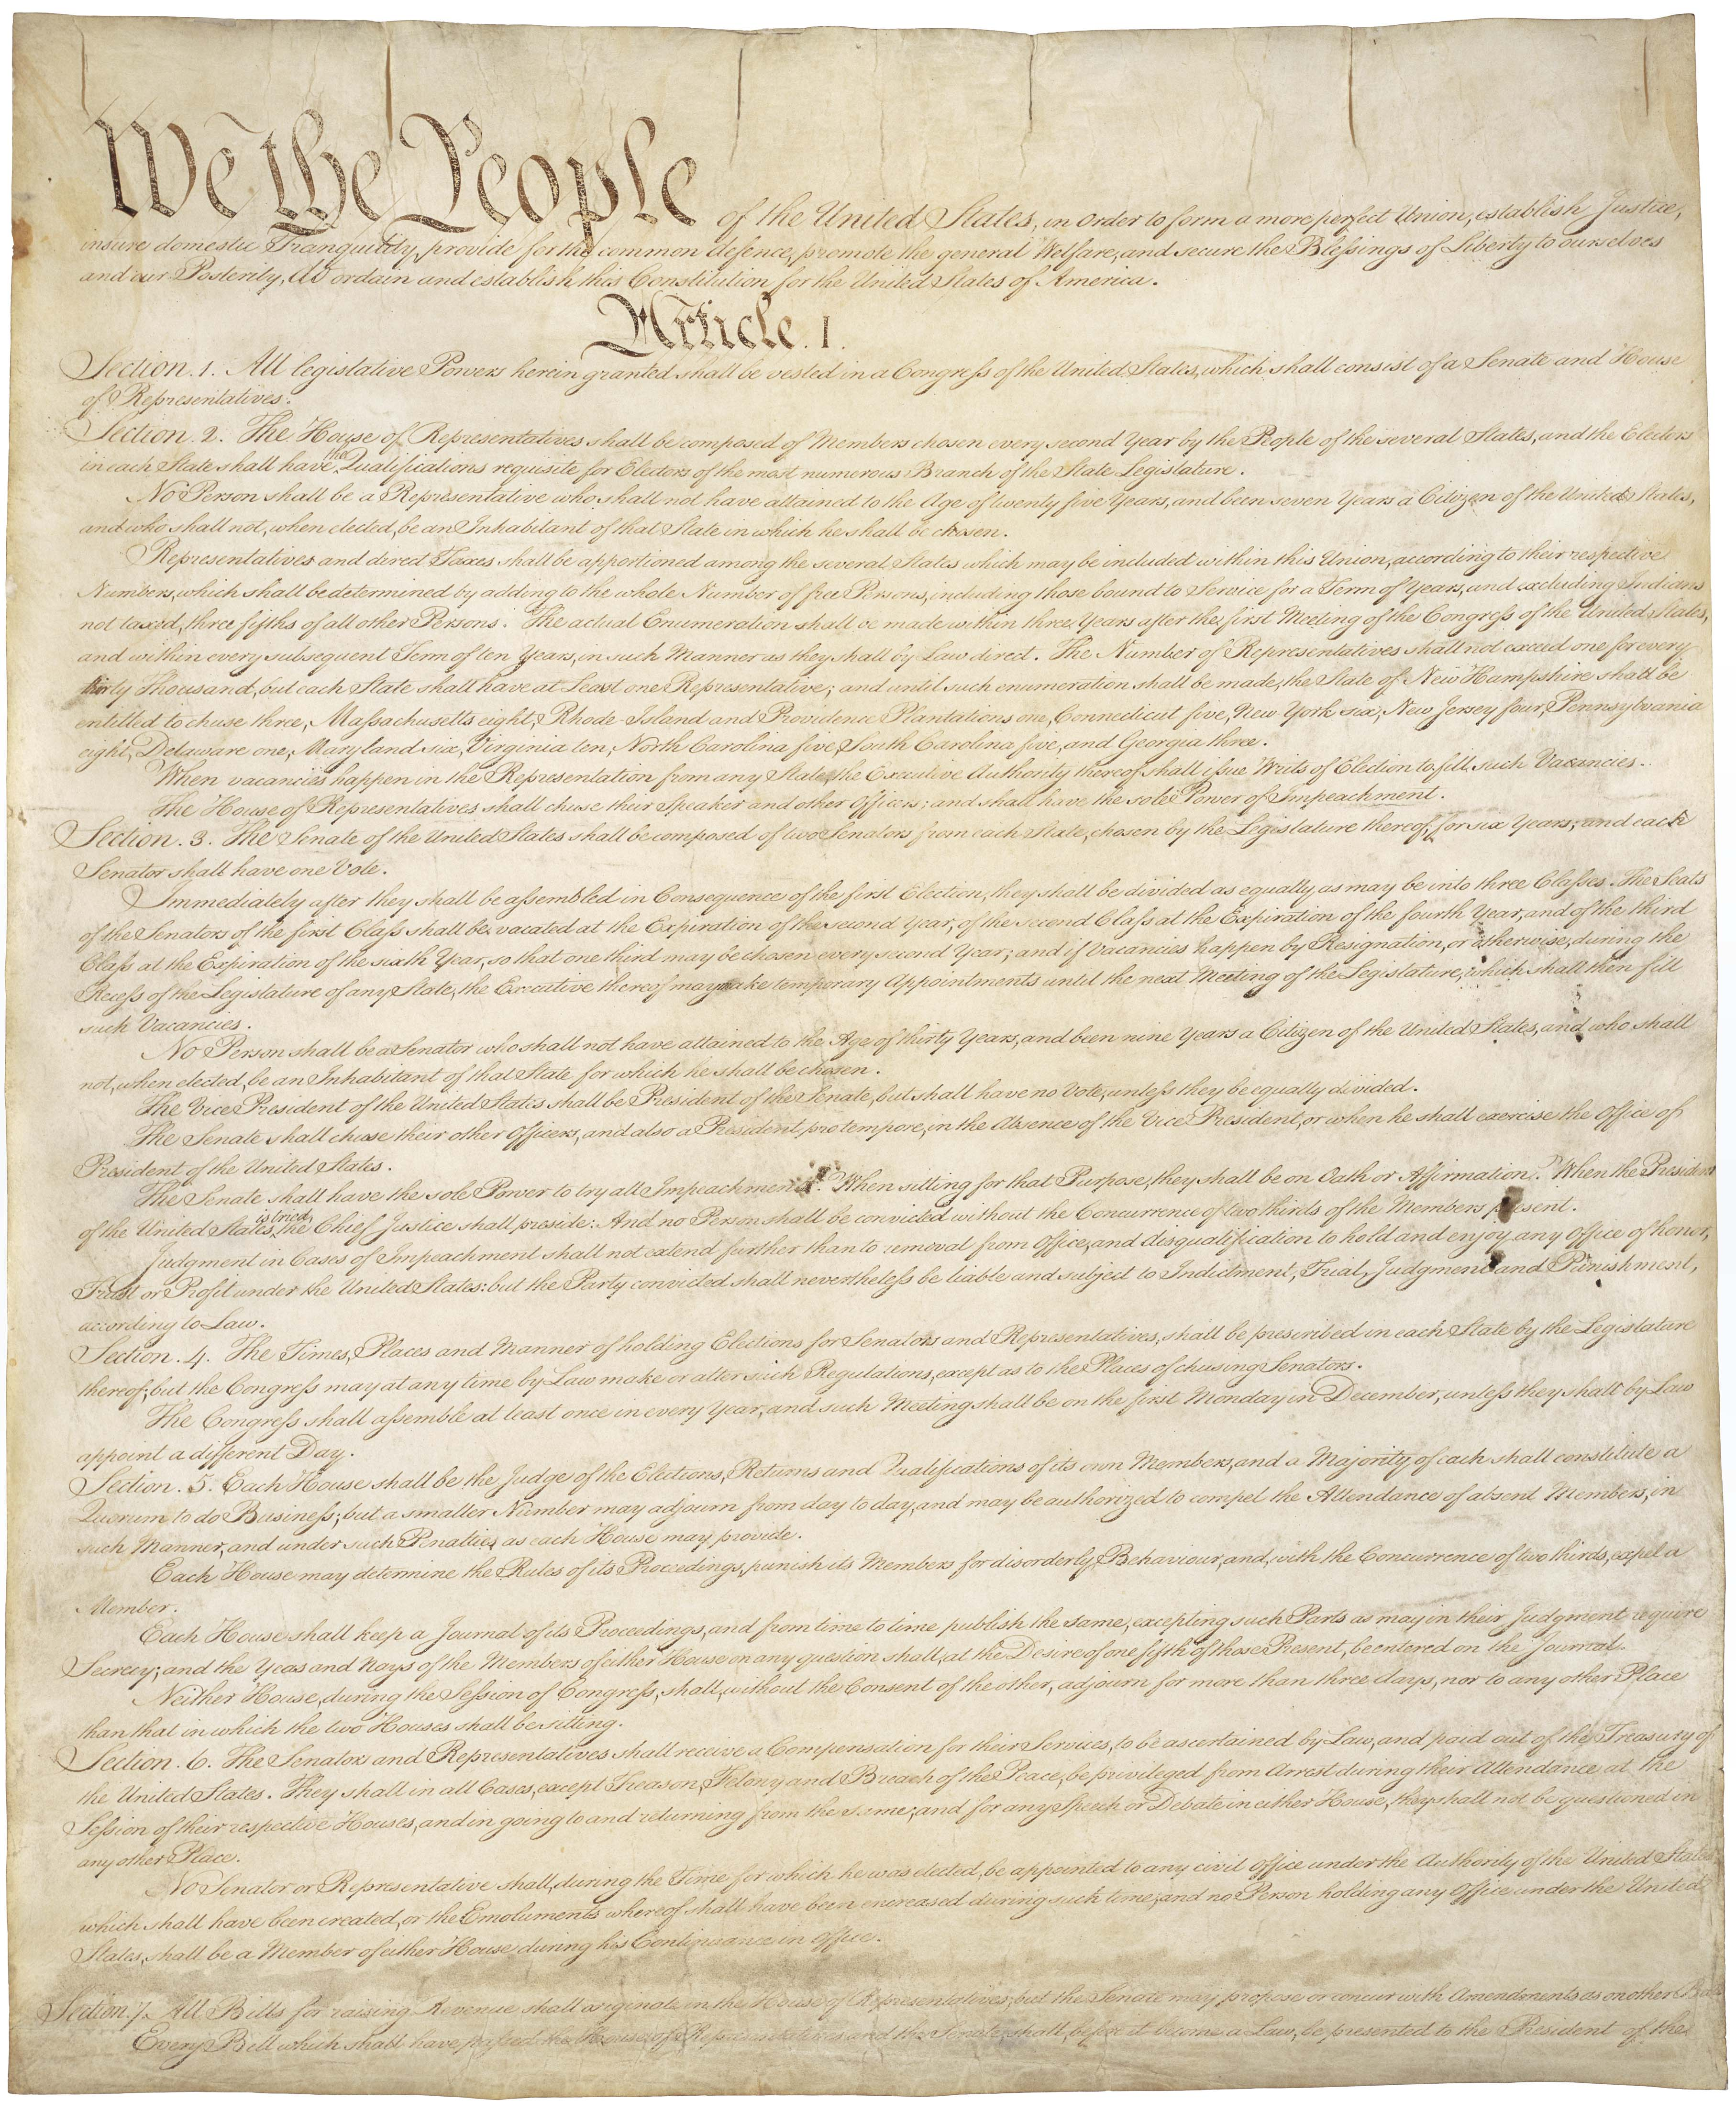 an overview of the founding fathers of the united states and the creation of the constitution